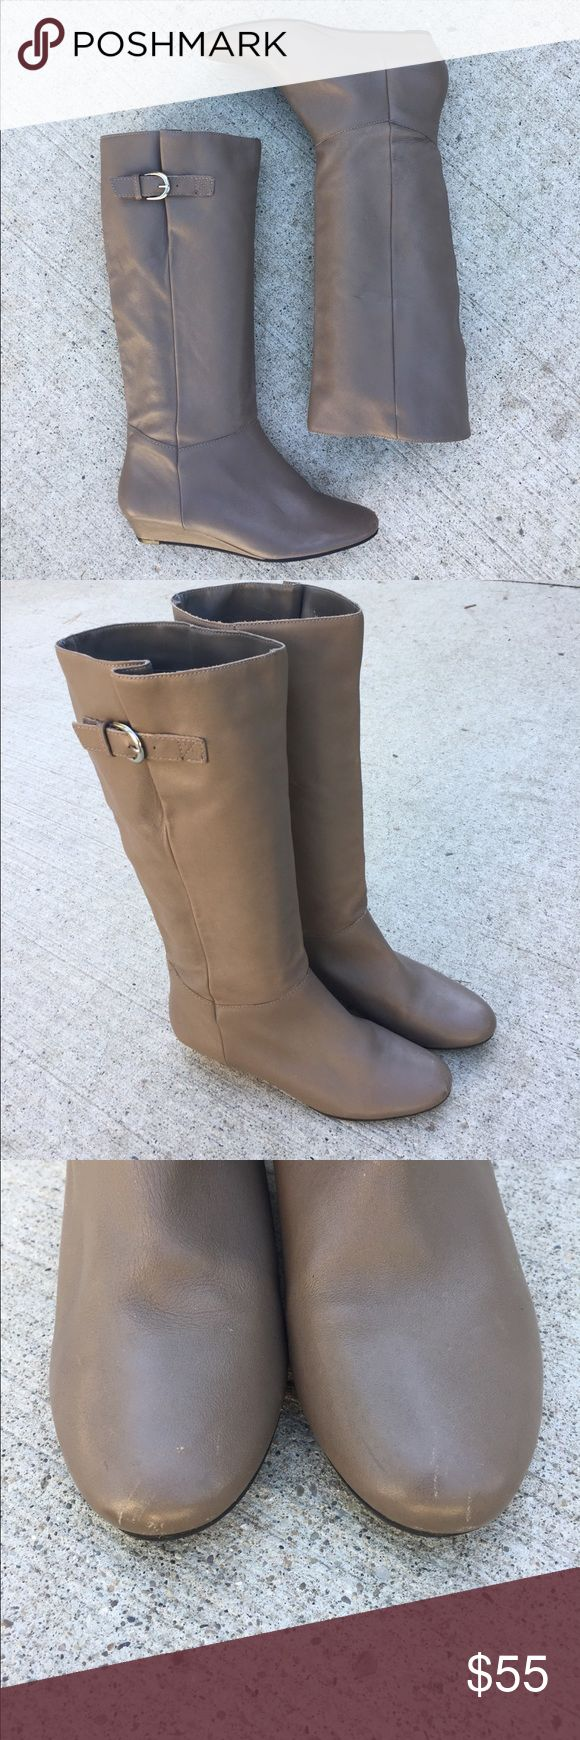 STEVE MADDEN Intyce Grey Taupe Boots 8 Excellent used condition! Some scratches but as you can see from the soles they have barely been worn! Tons of life left! Great addition to your fall wardrobe! Steve Madden Shoes Heeled Boots